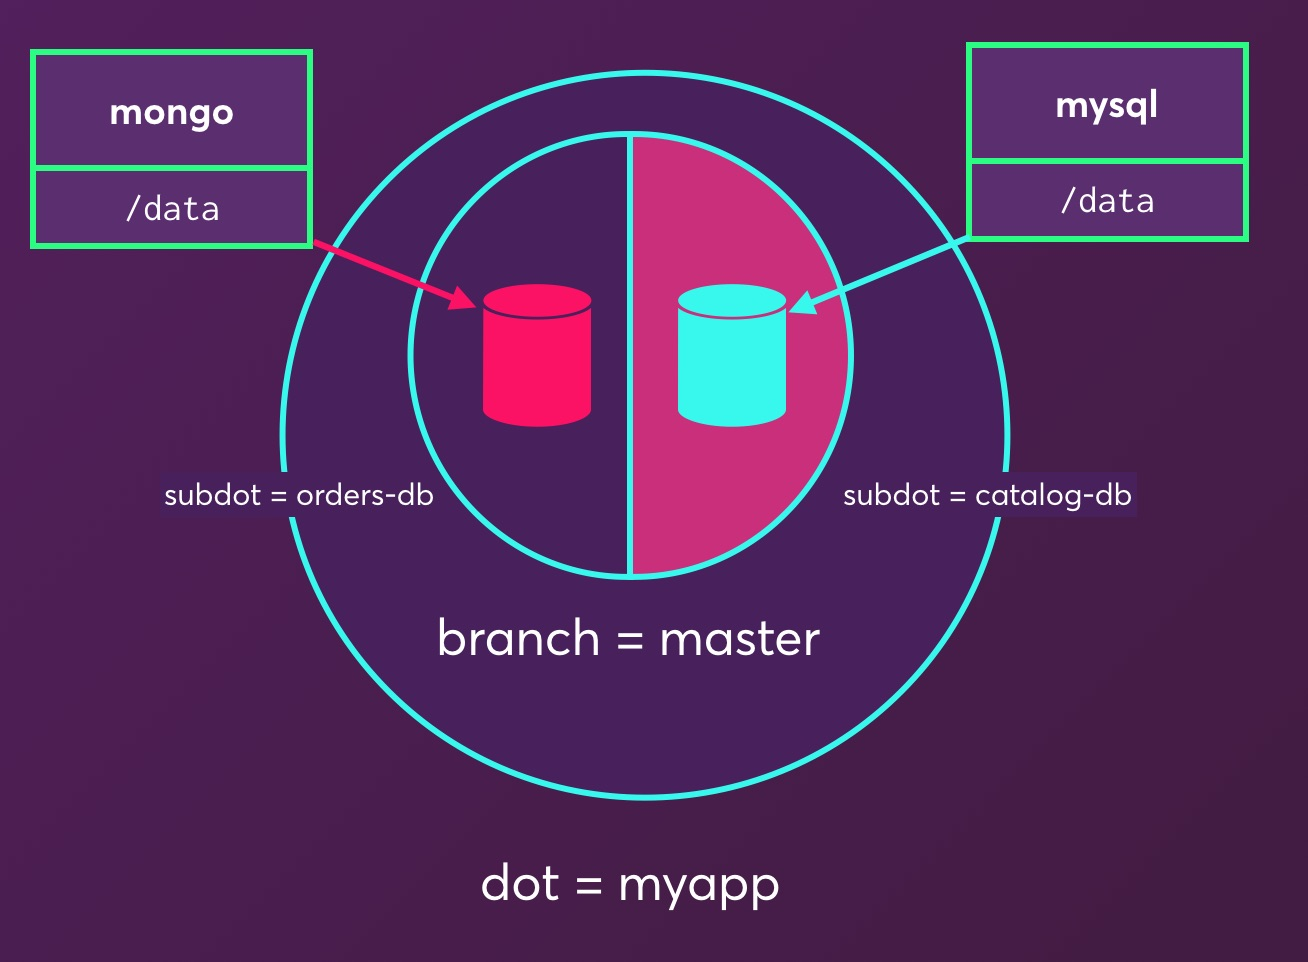 What is a datadot within dotmesh